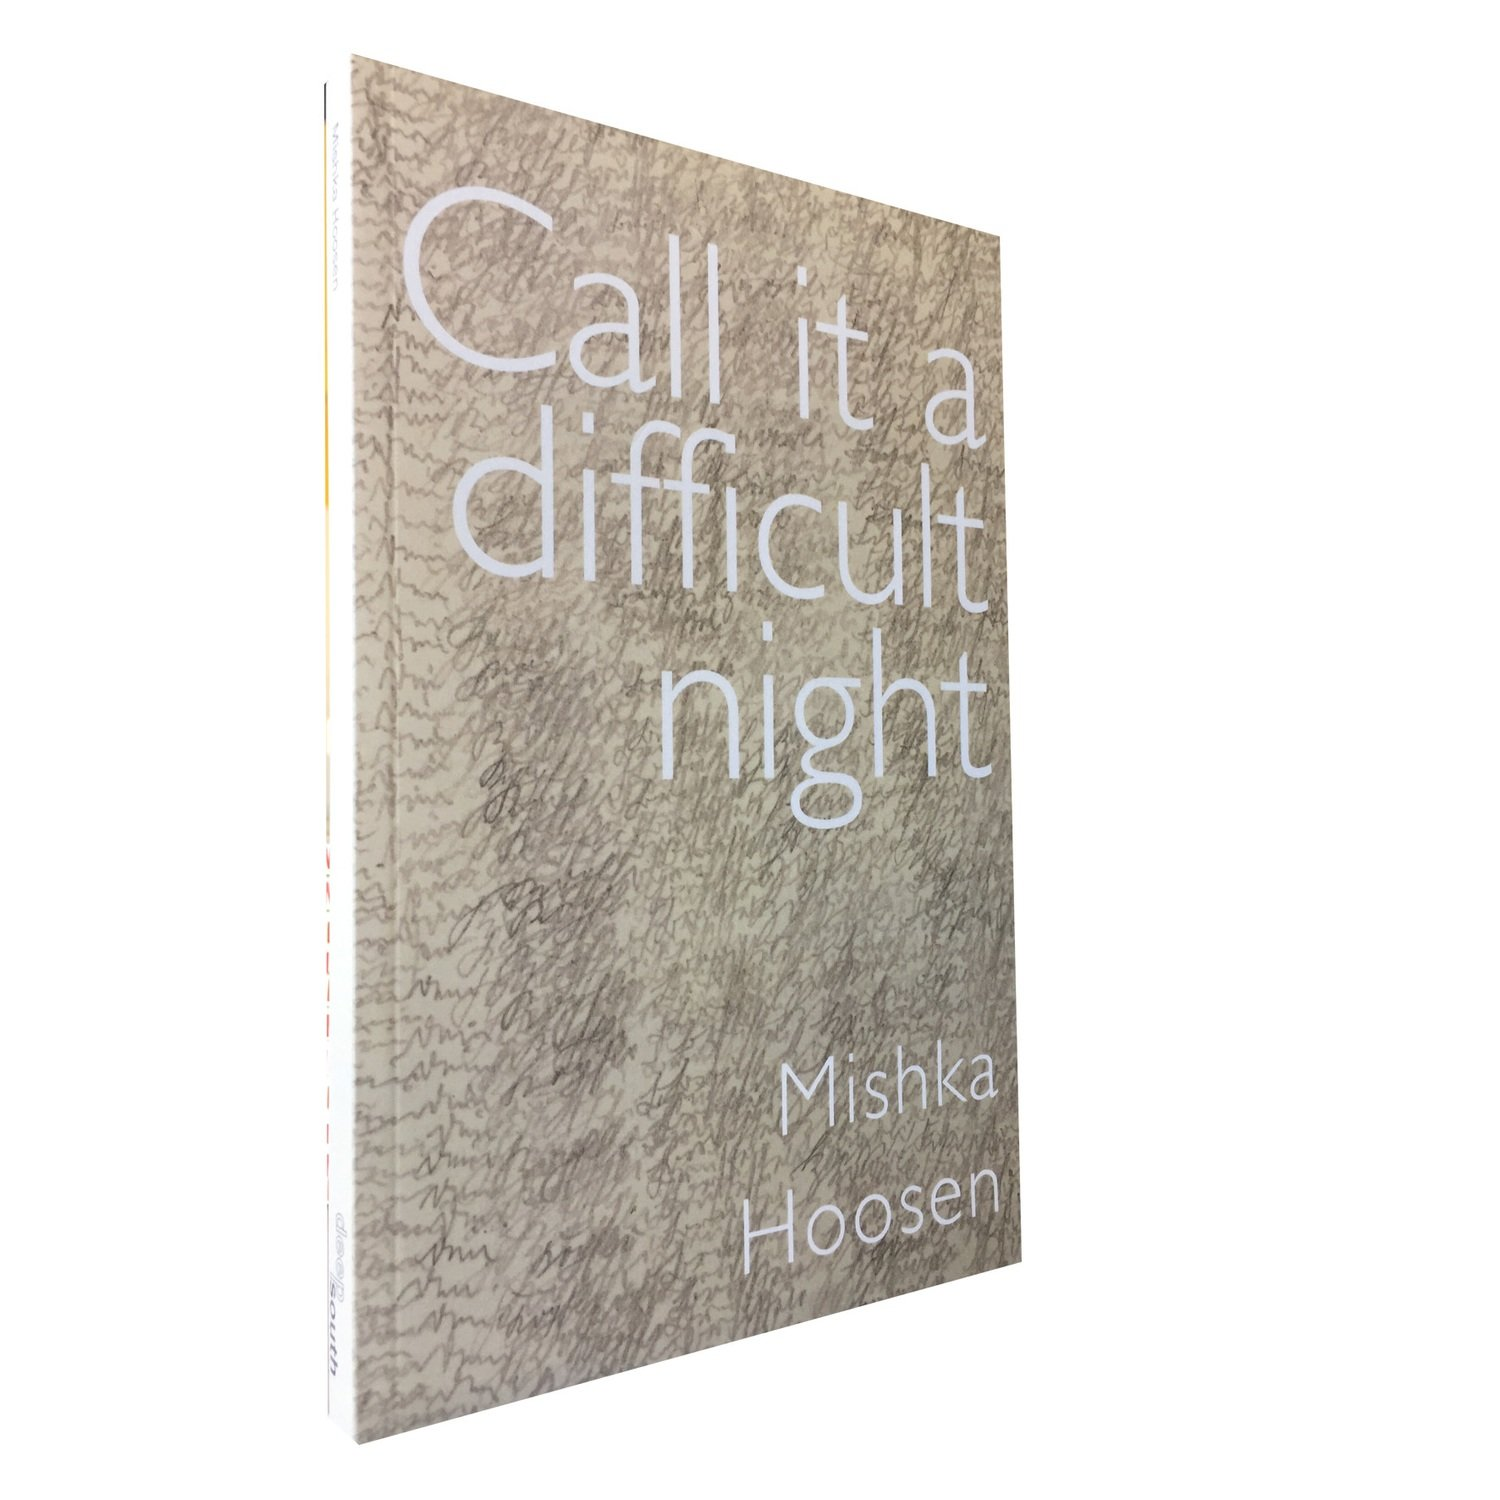 Call it a difficult night by Mishka Hoosen (Deep South, 2016)